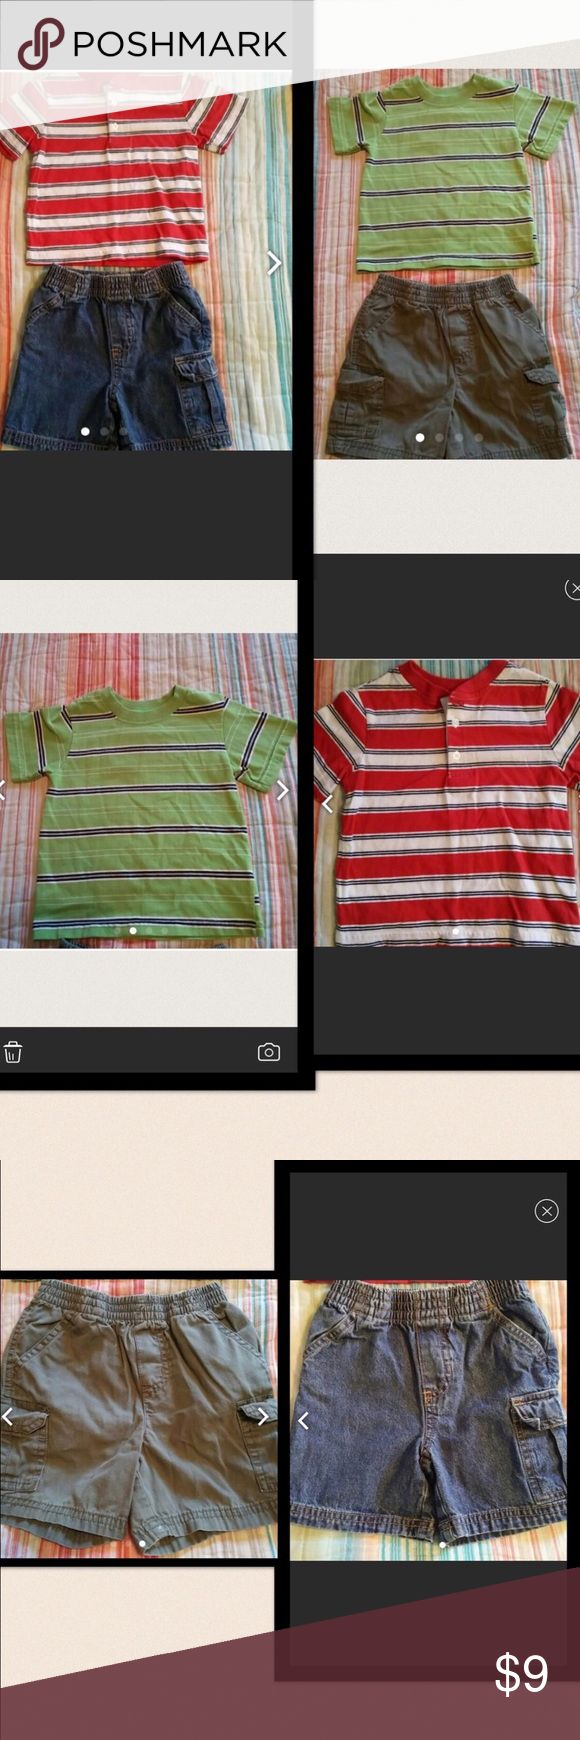 2 striped shirt outfits 2 striped shirt outfits, 18 mo. Very small spots shown in last pic of green shorts. Matching Sets